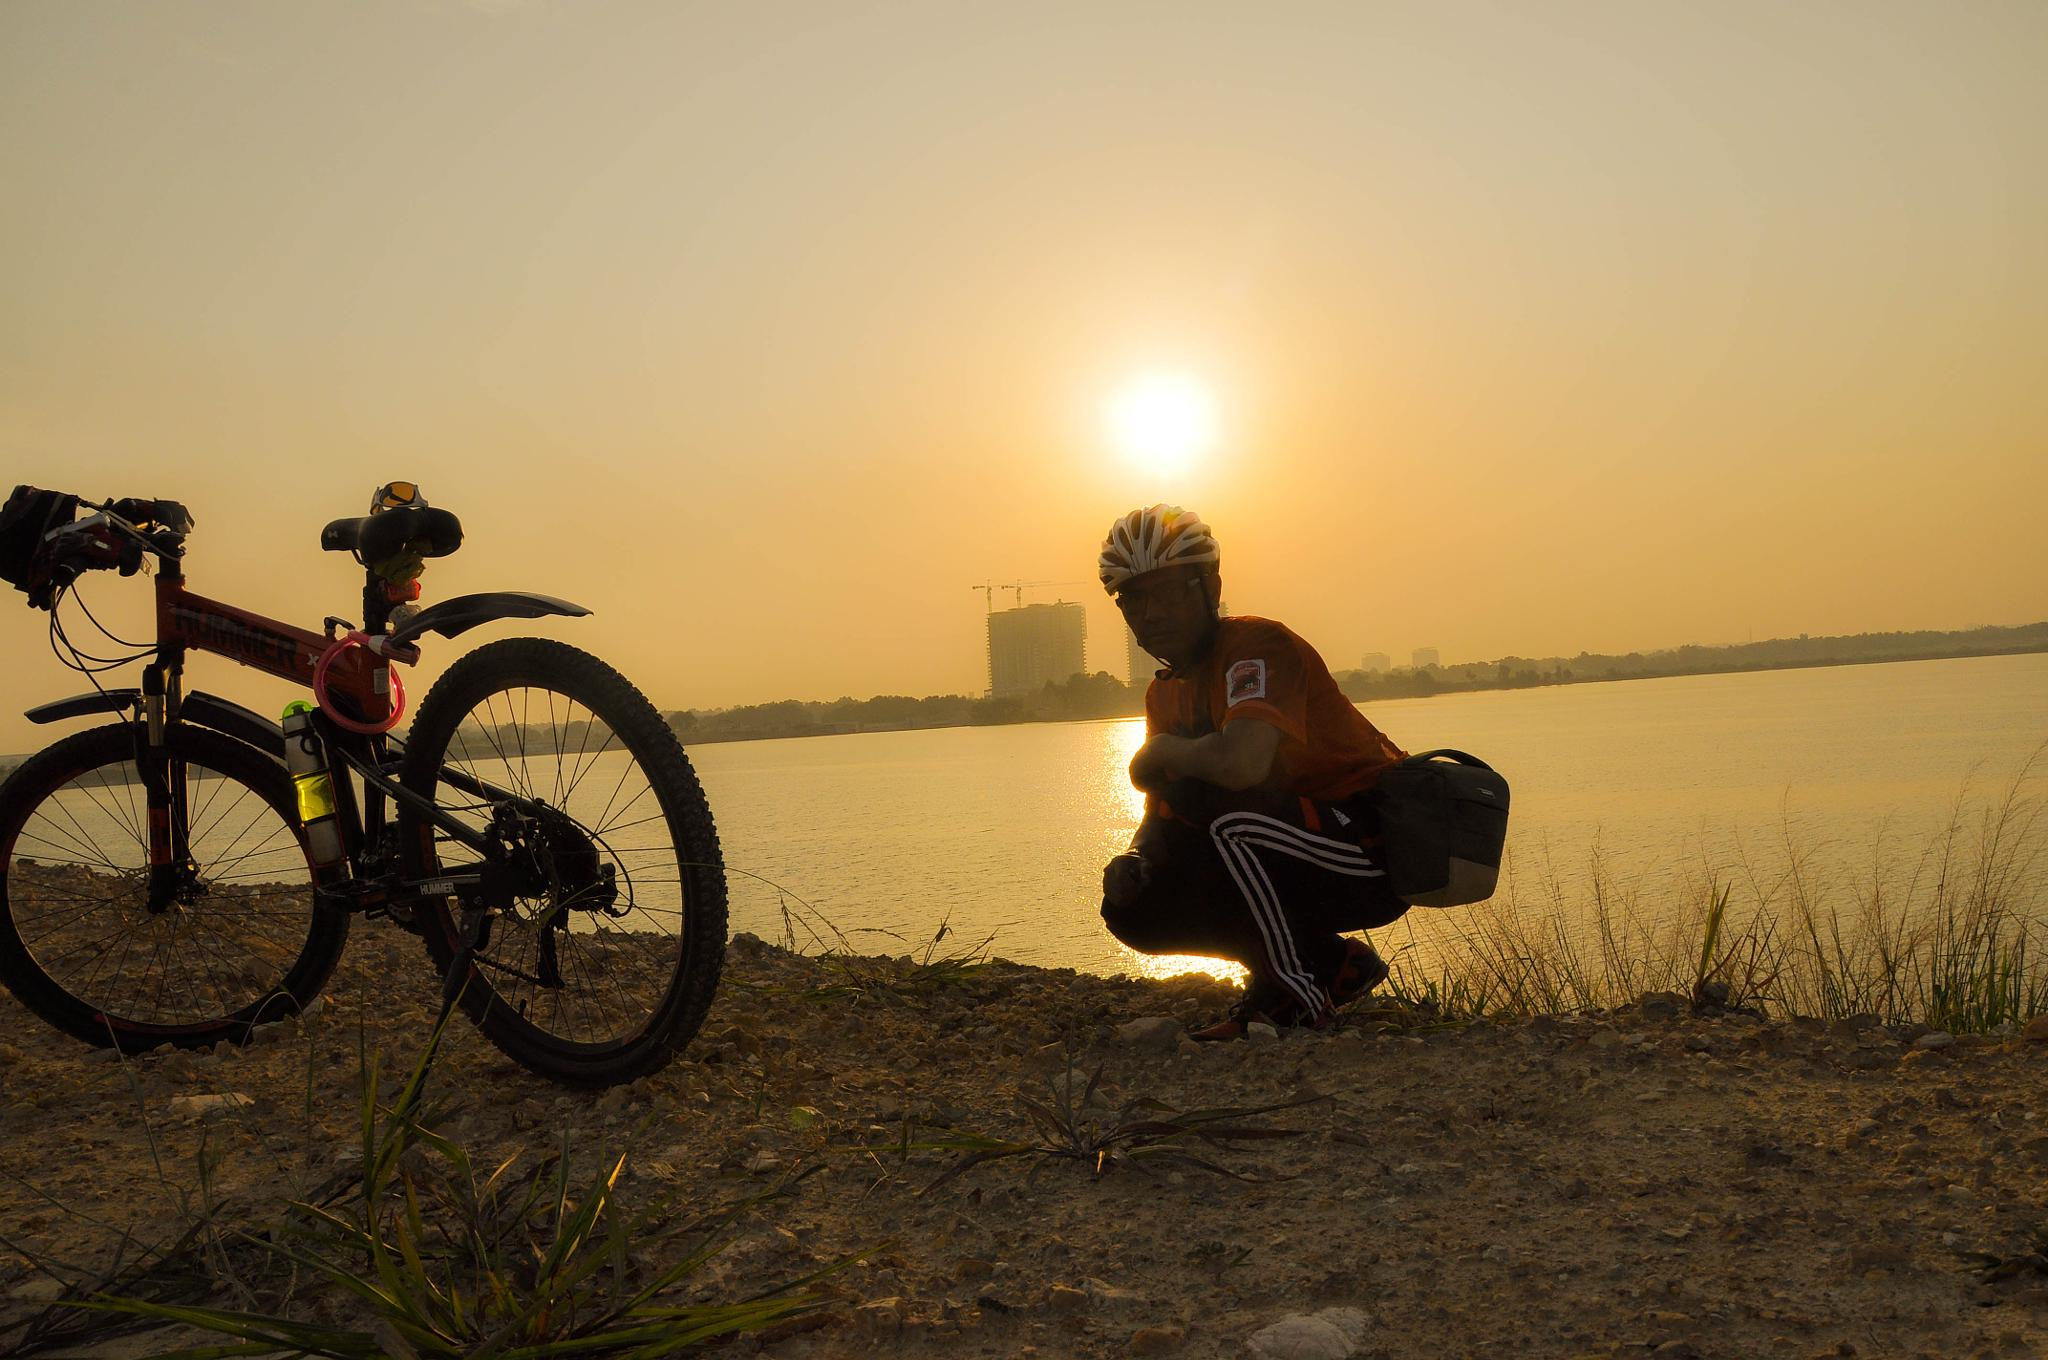 My Camera and Bicycle by Nor Ikhsan Ismail